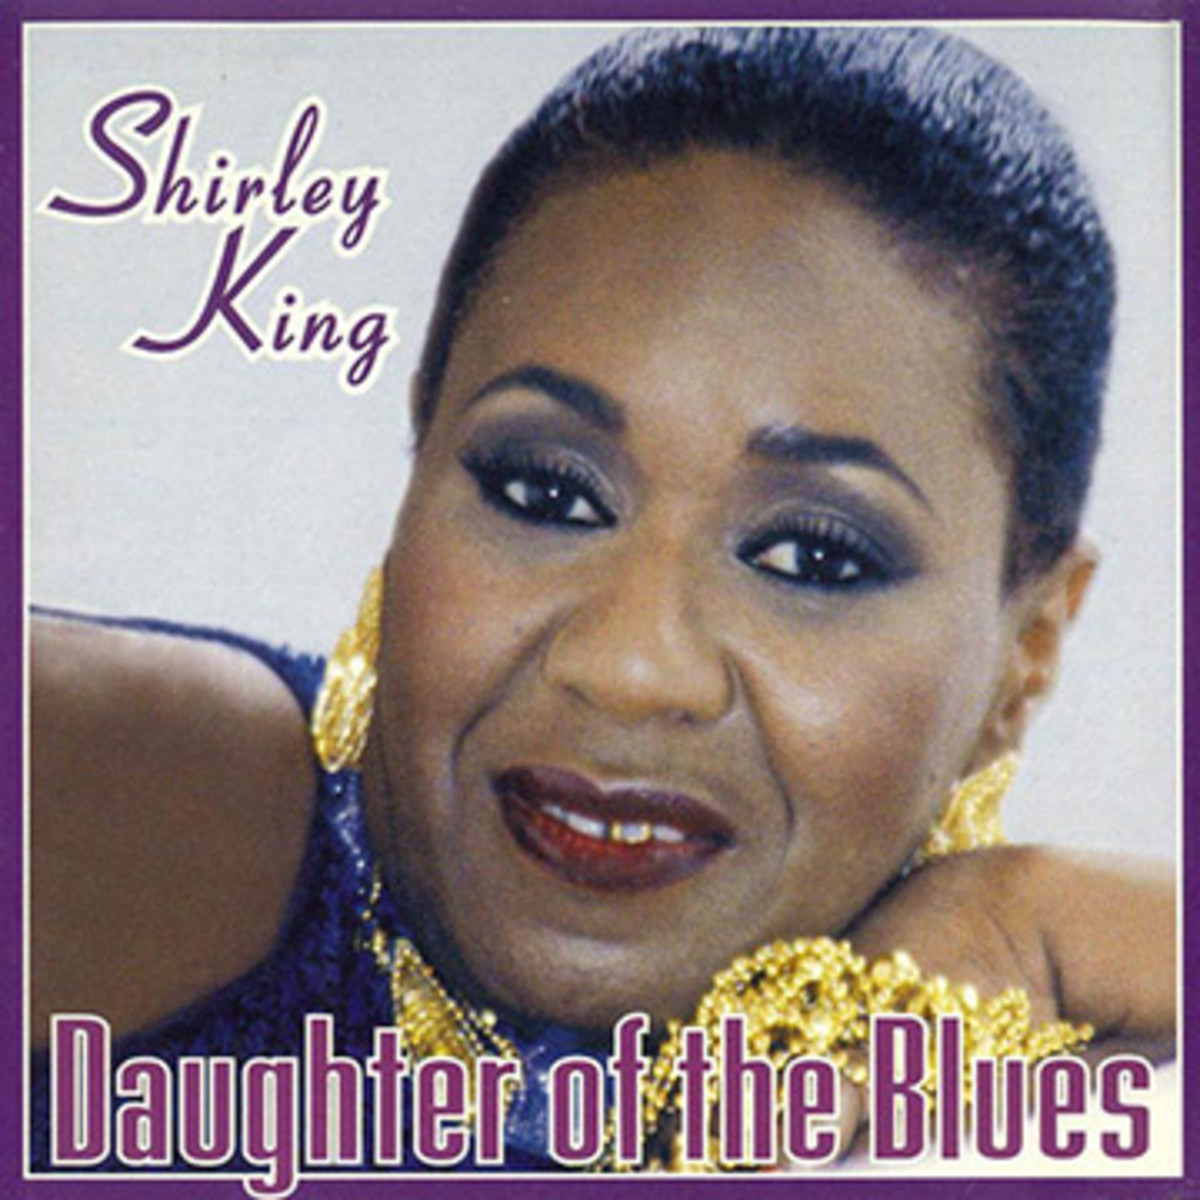 leaving-you-thisttime-by-shirley-king-daughter-of-the-blues